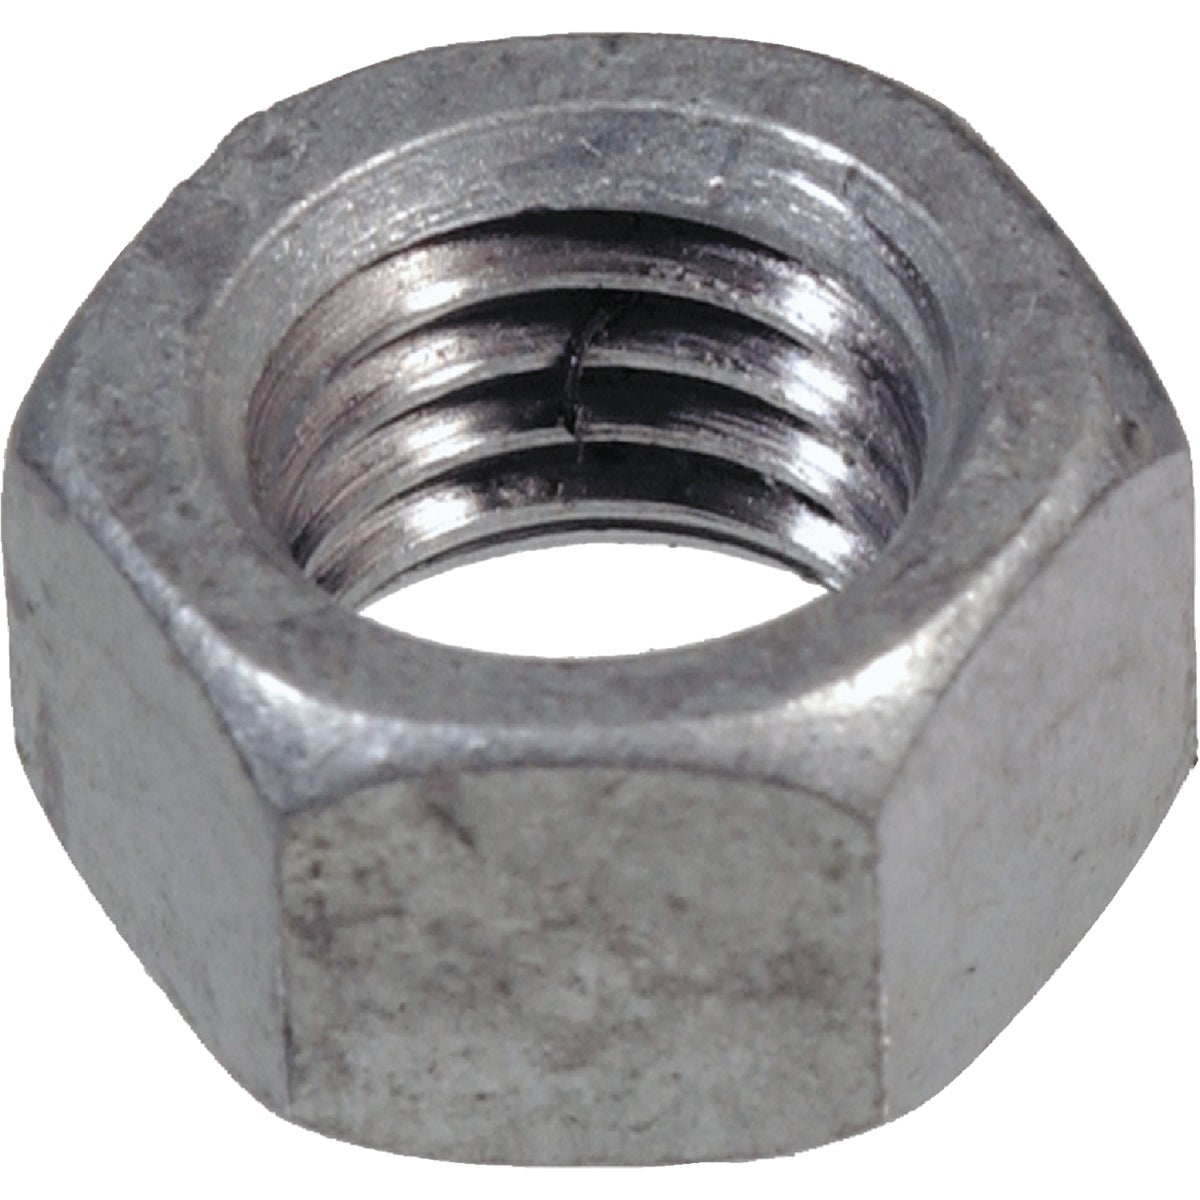 100PC 1/4-20 HEX NUT - 810503 by Hillman Fastener